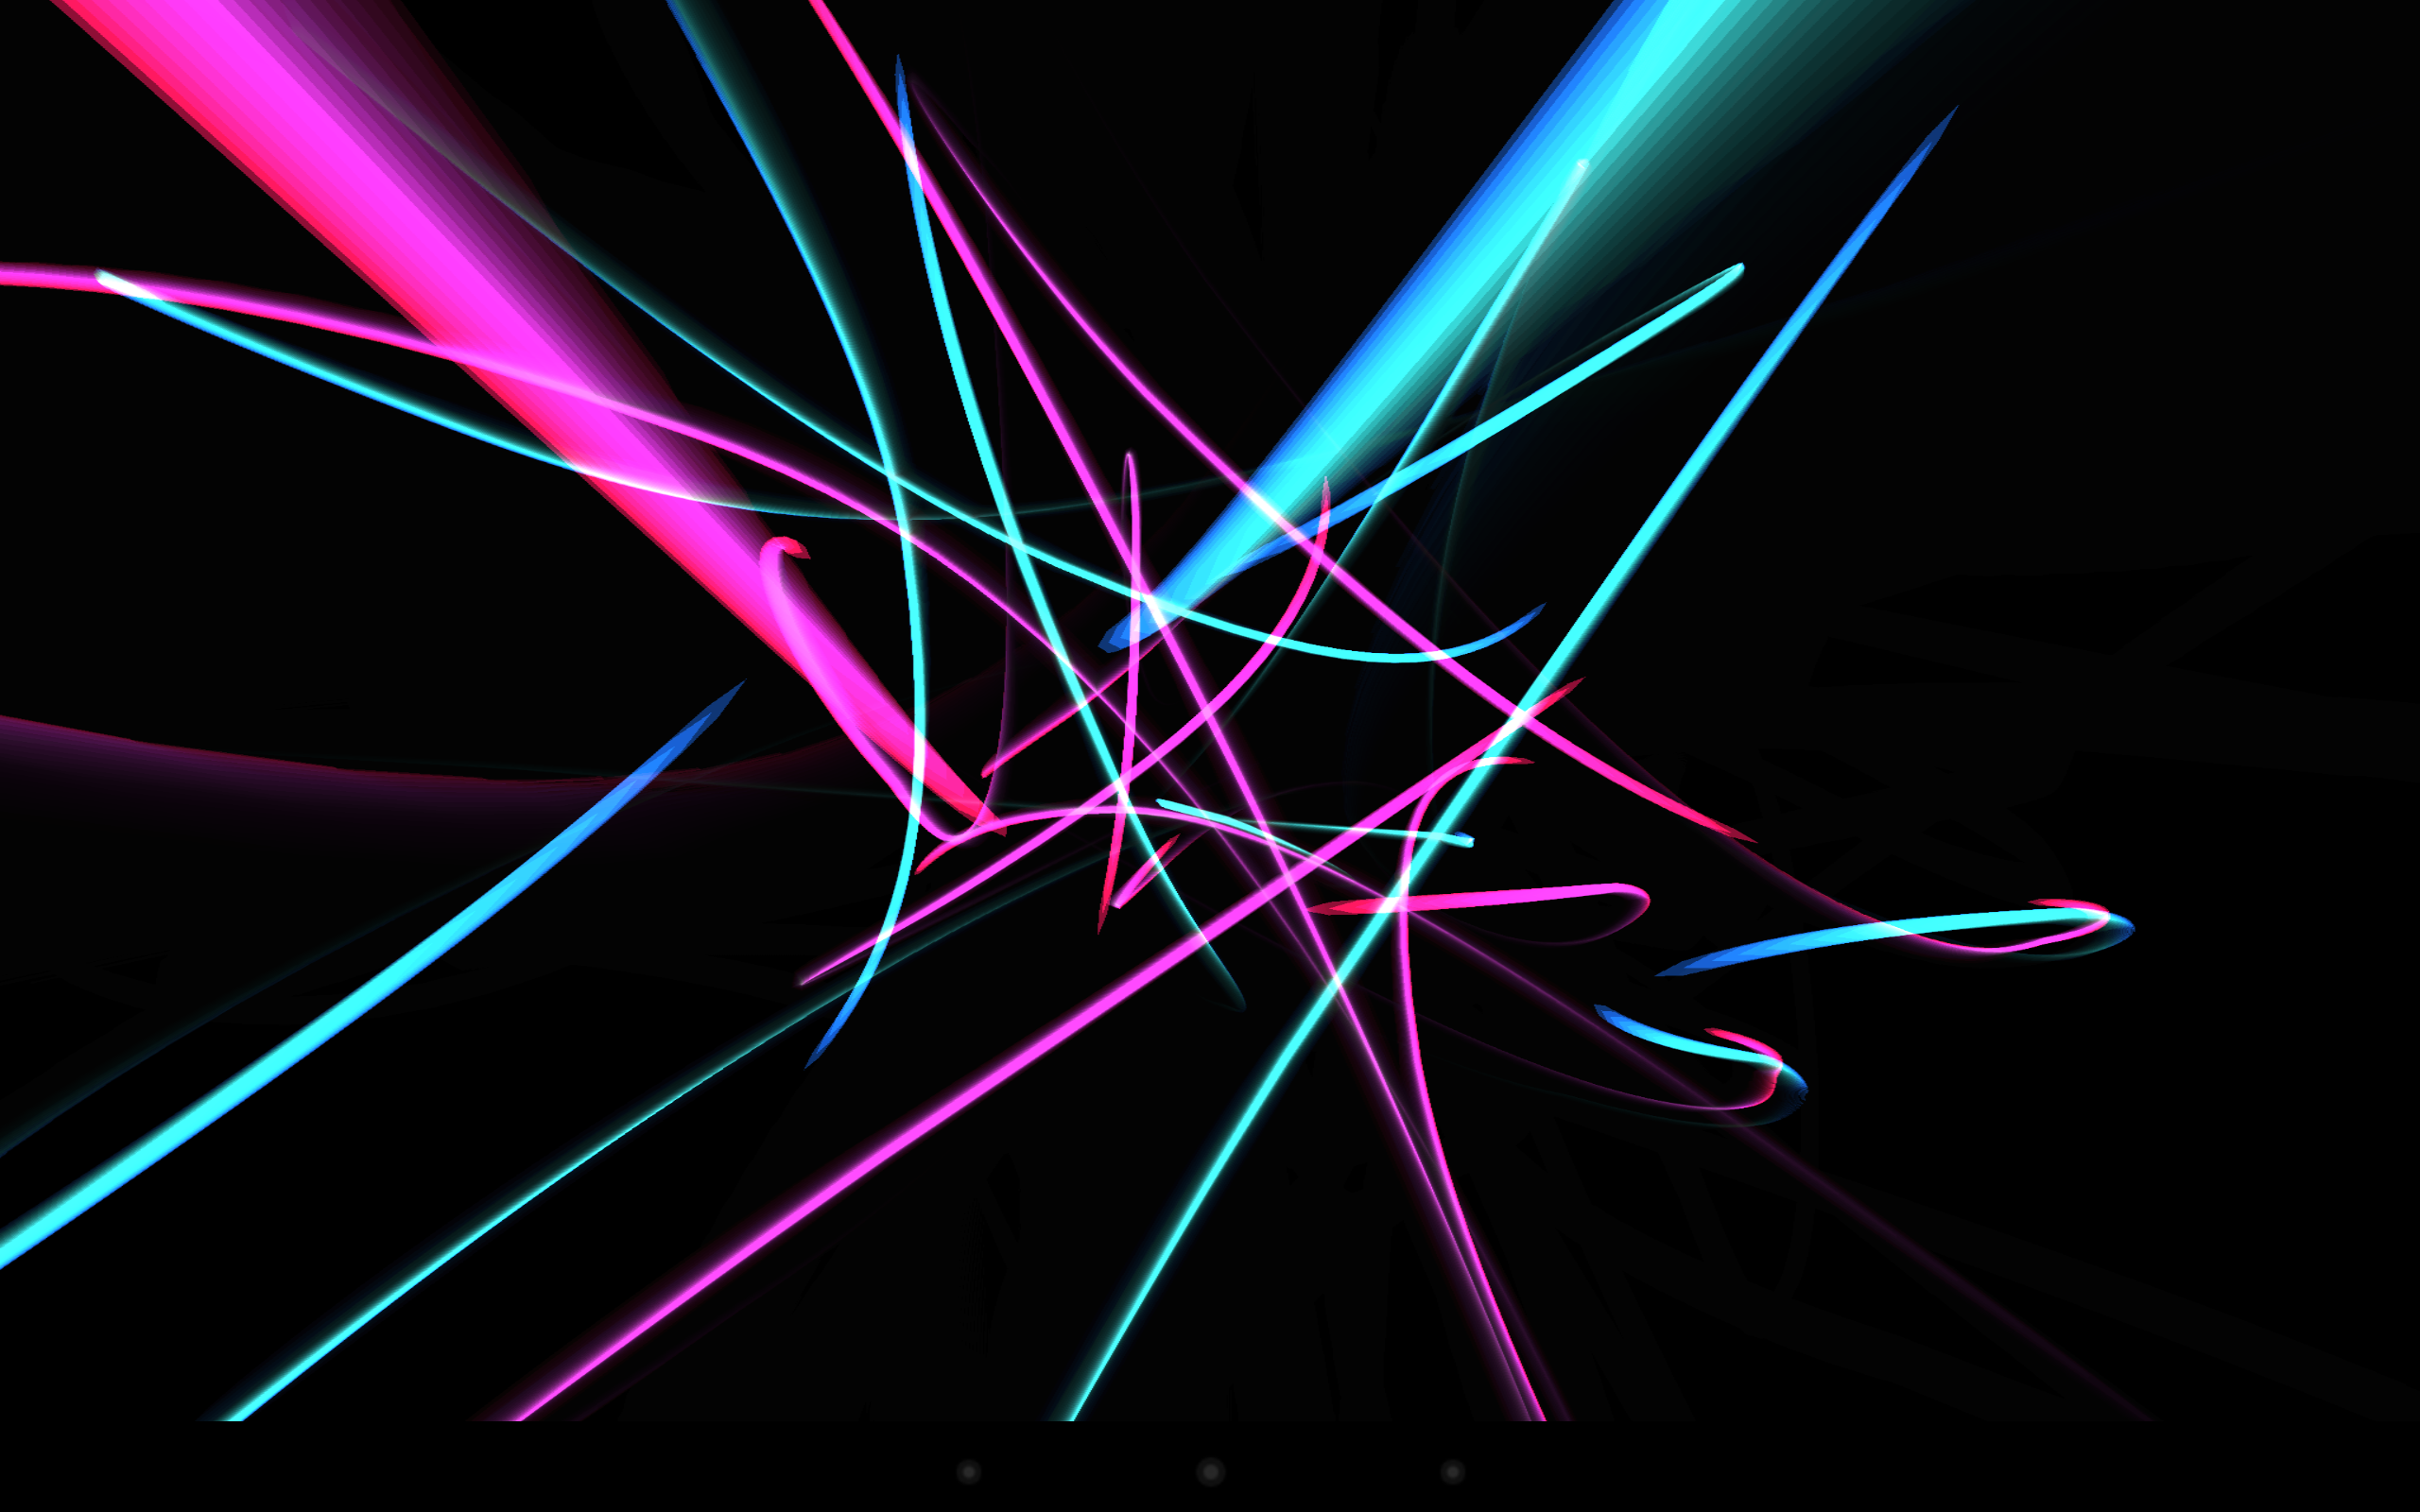 visualizer music android live amazon audio background google screen apk app play effects visualization apps flow engine visualized description